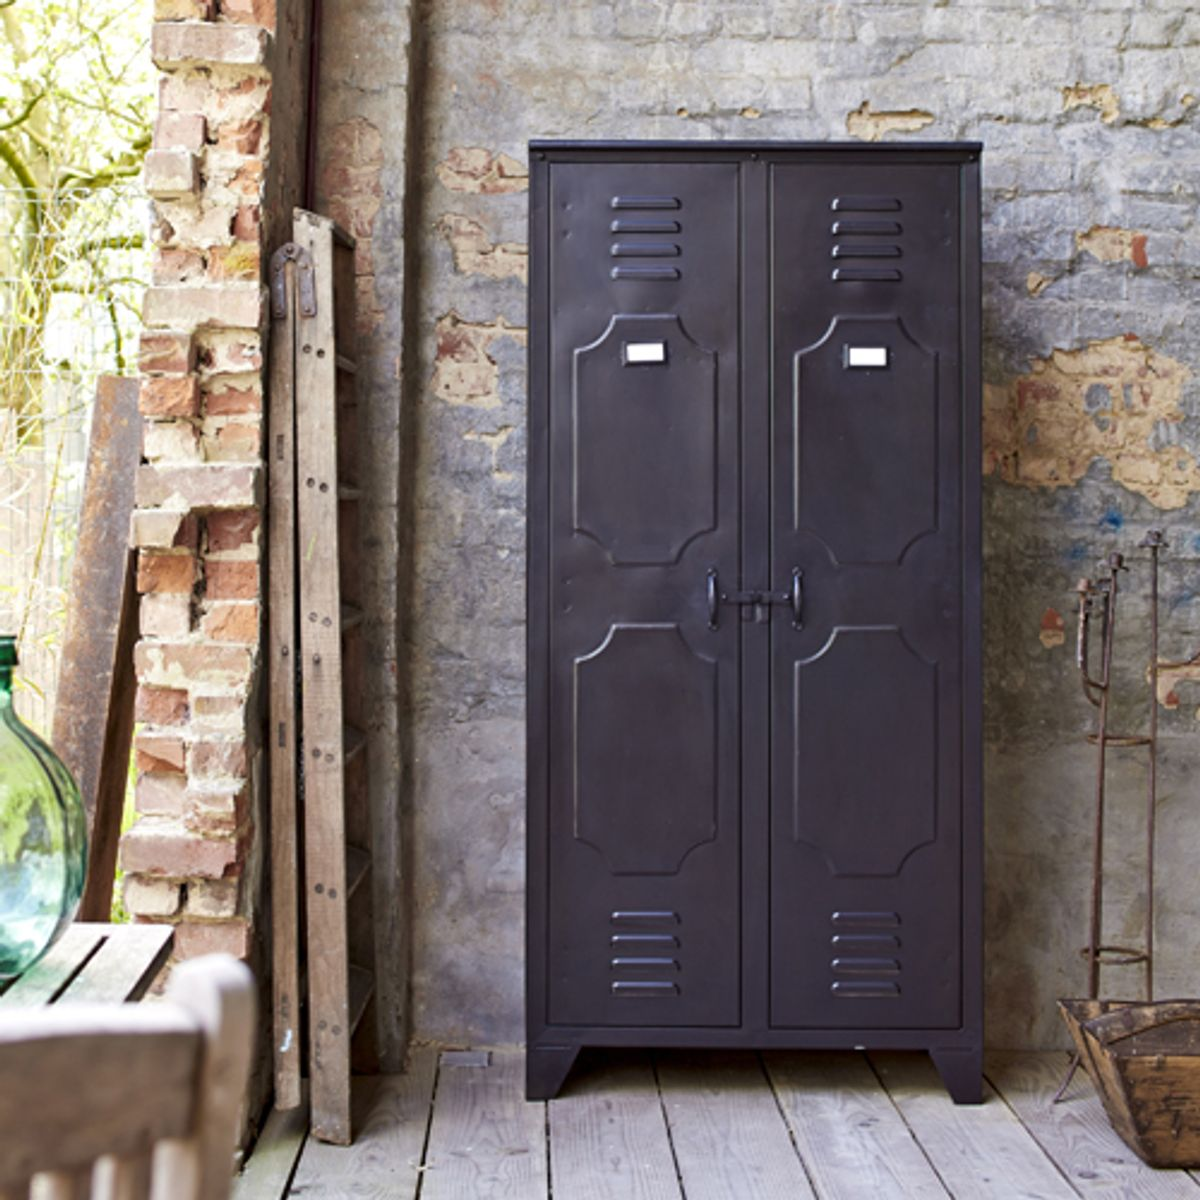 armoire 2 portes et 8 casiers en m tal noir industriel. Black Bedroom Furniture Sets. Home Design Ideas